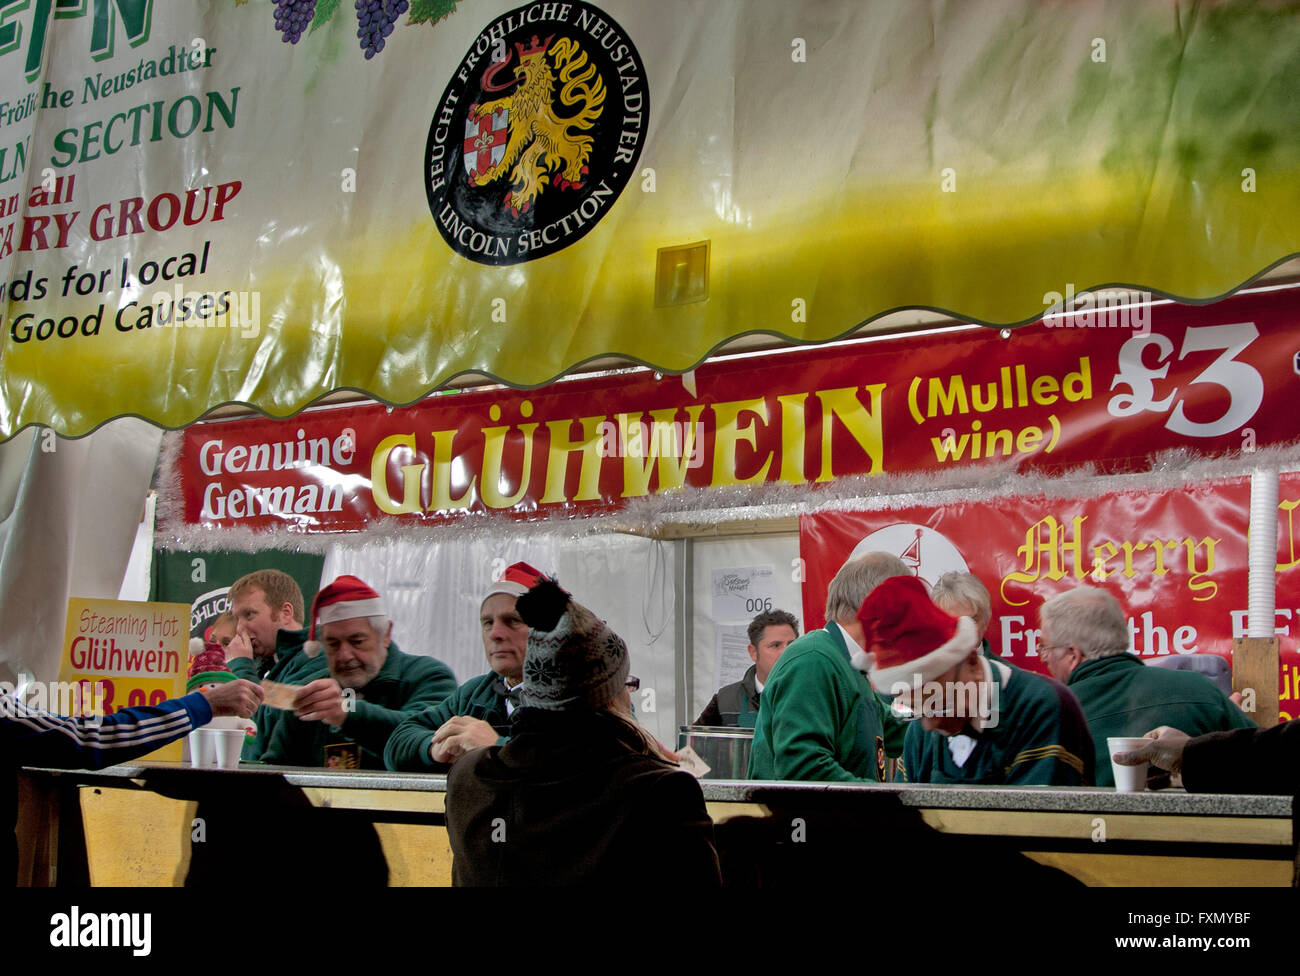 Christmas market in Lincoln, Lincolnshire, England, a booth from Neustadt, Germany selling hot mulled wine. - Stock Image